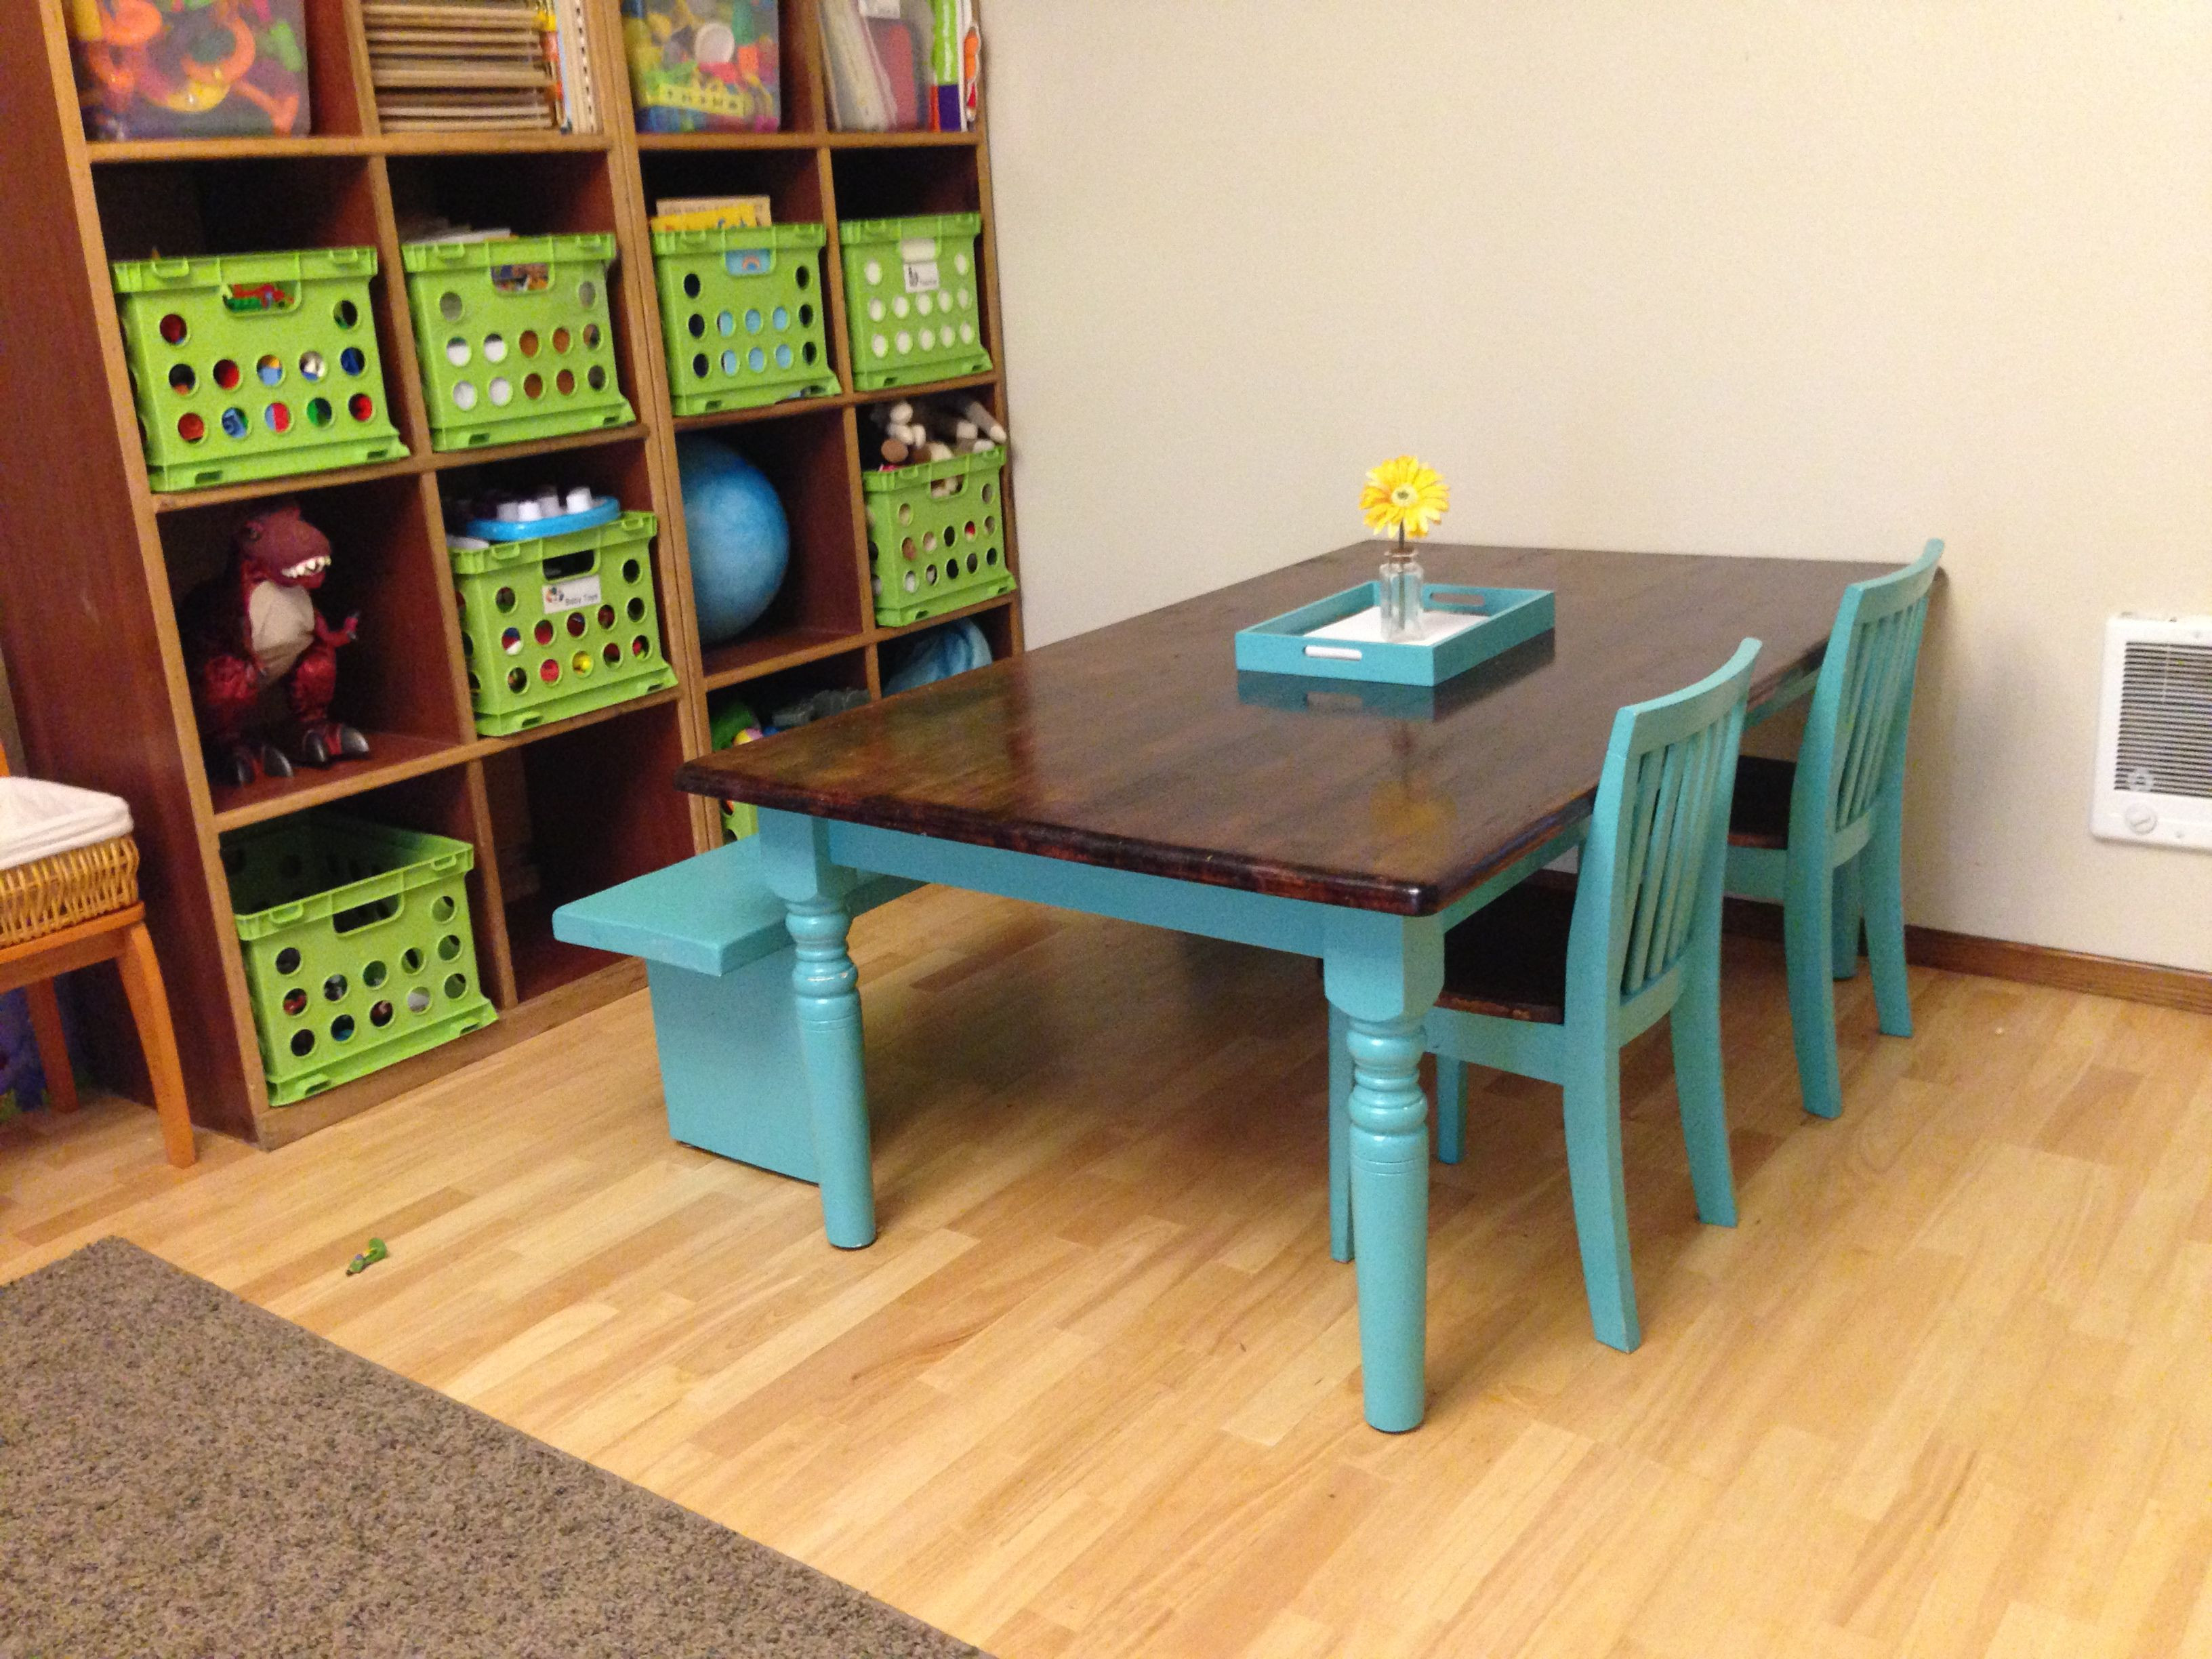 Best ideas about DIY Kids Playrooms . Save or Pin Playroom table DIY Play Room Ideas Now.